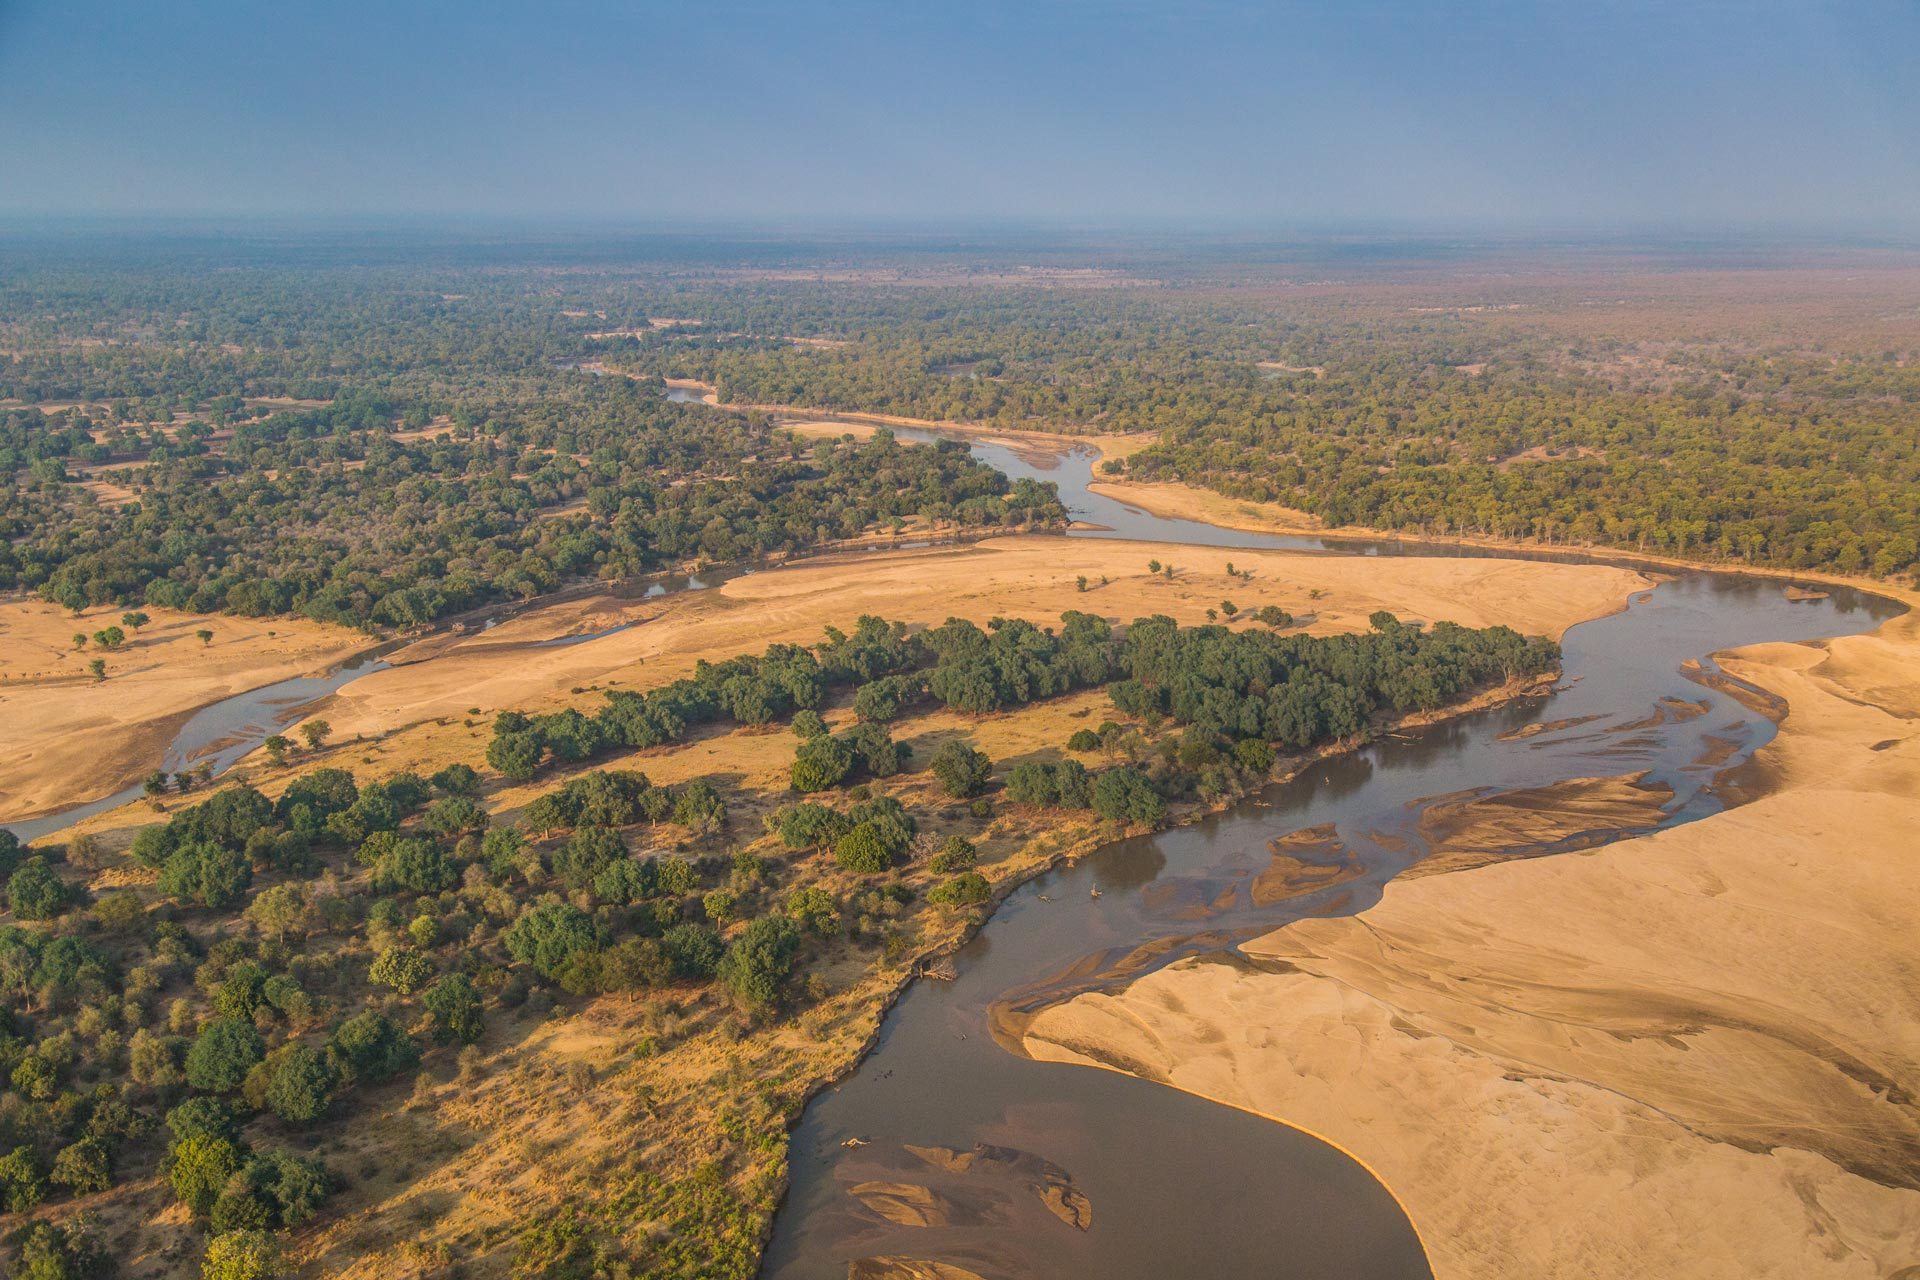 The Luangwa Valley, an extension of the Great East African Rift Valley, is the honey-pot of Zambia